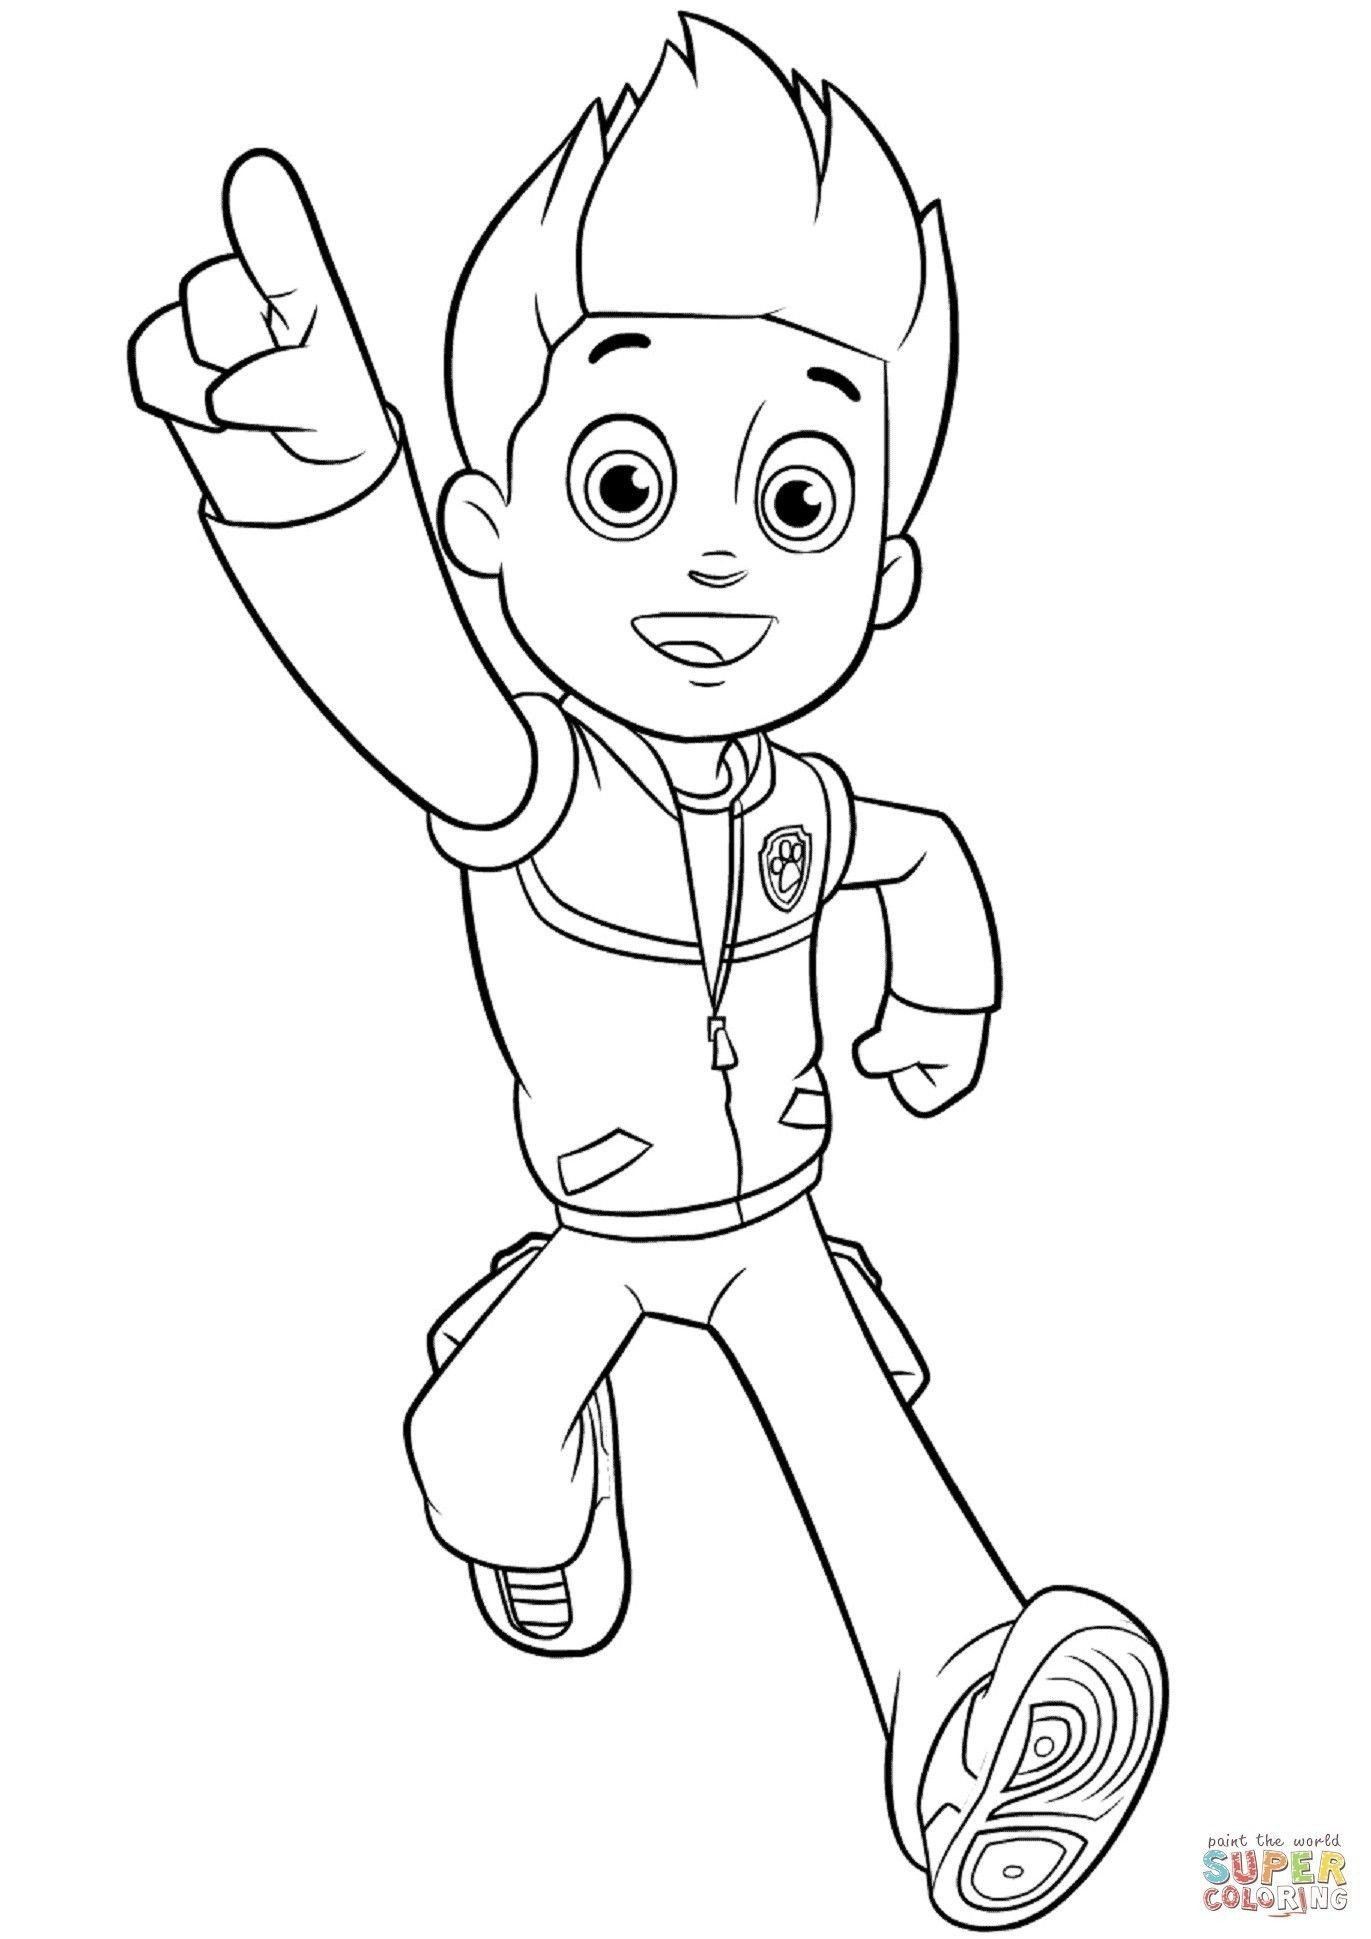 paw patrol coloring pages ryder ryder paw patrol colouring pages paw patrol coloring ryder paw patrol coloring pages